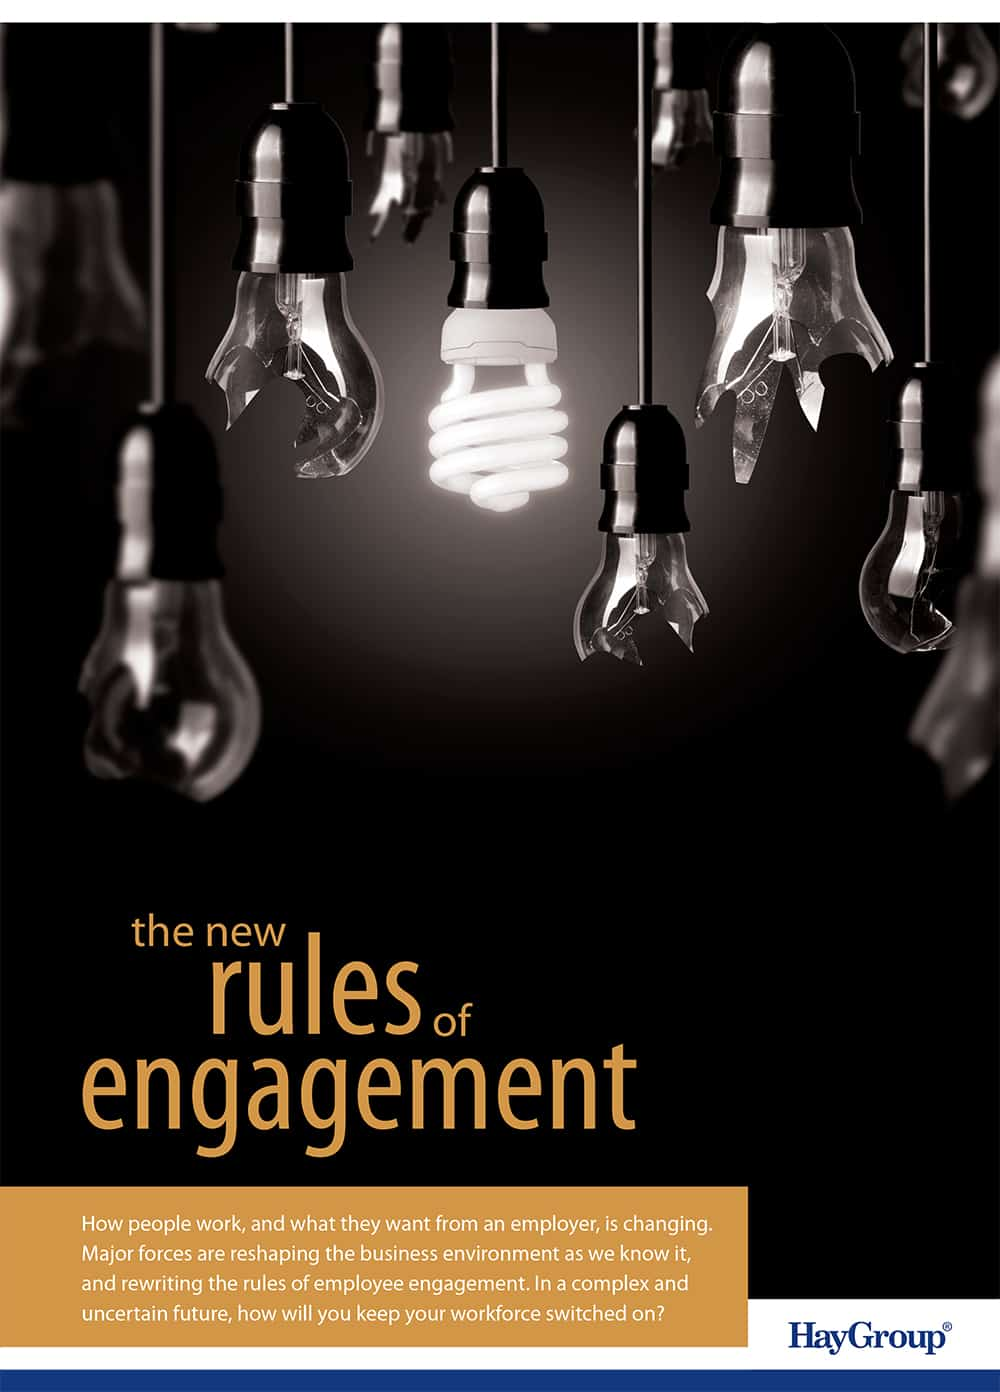 The-new-rules-of-engagement